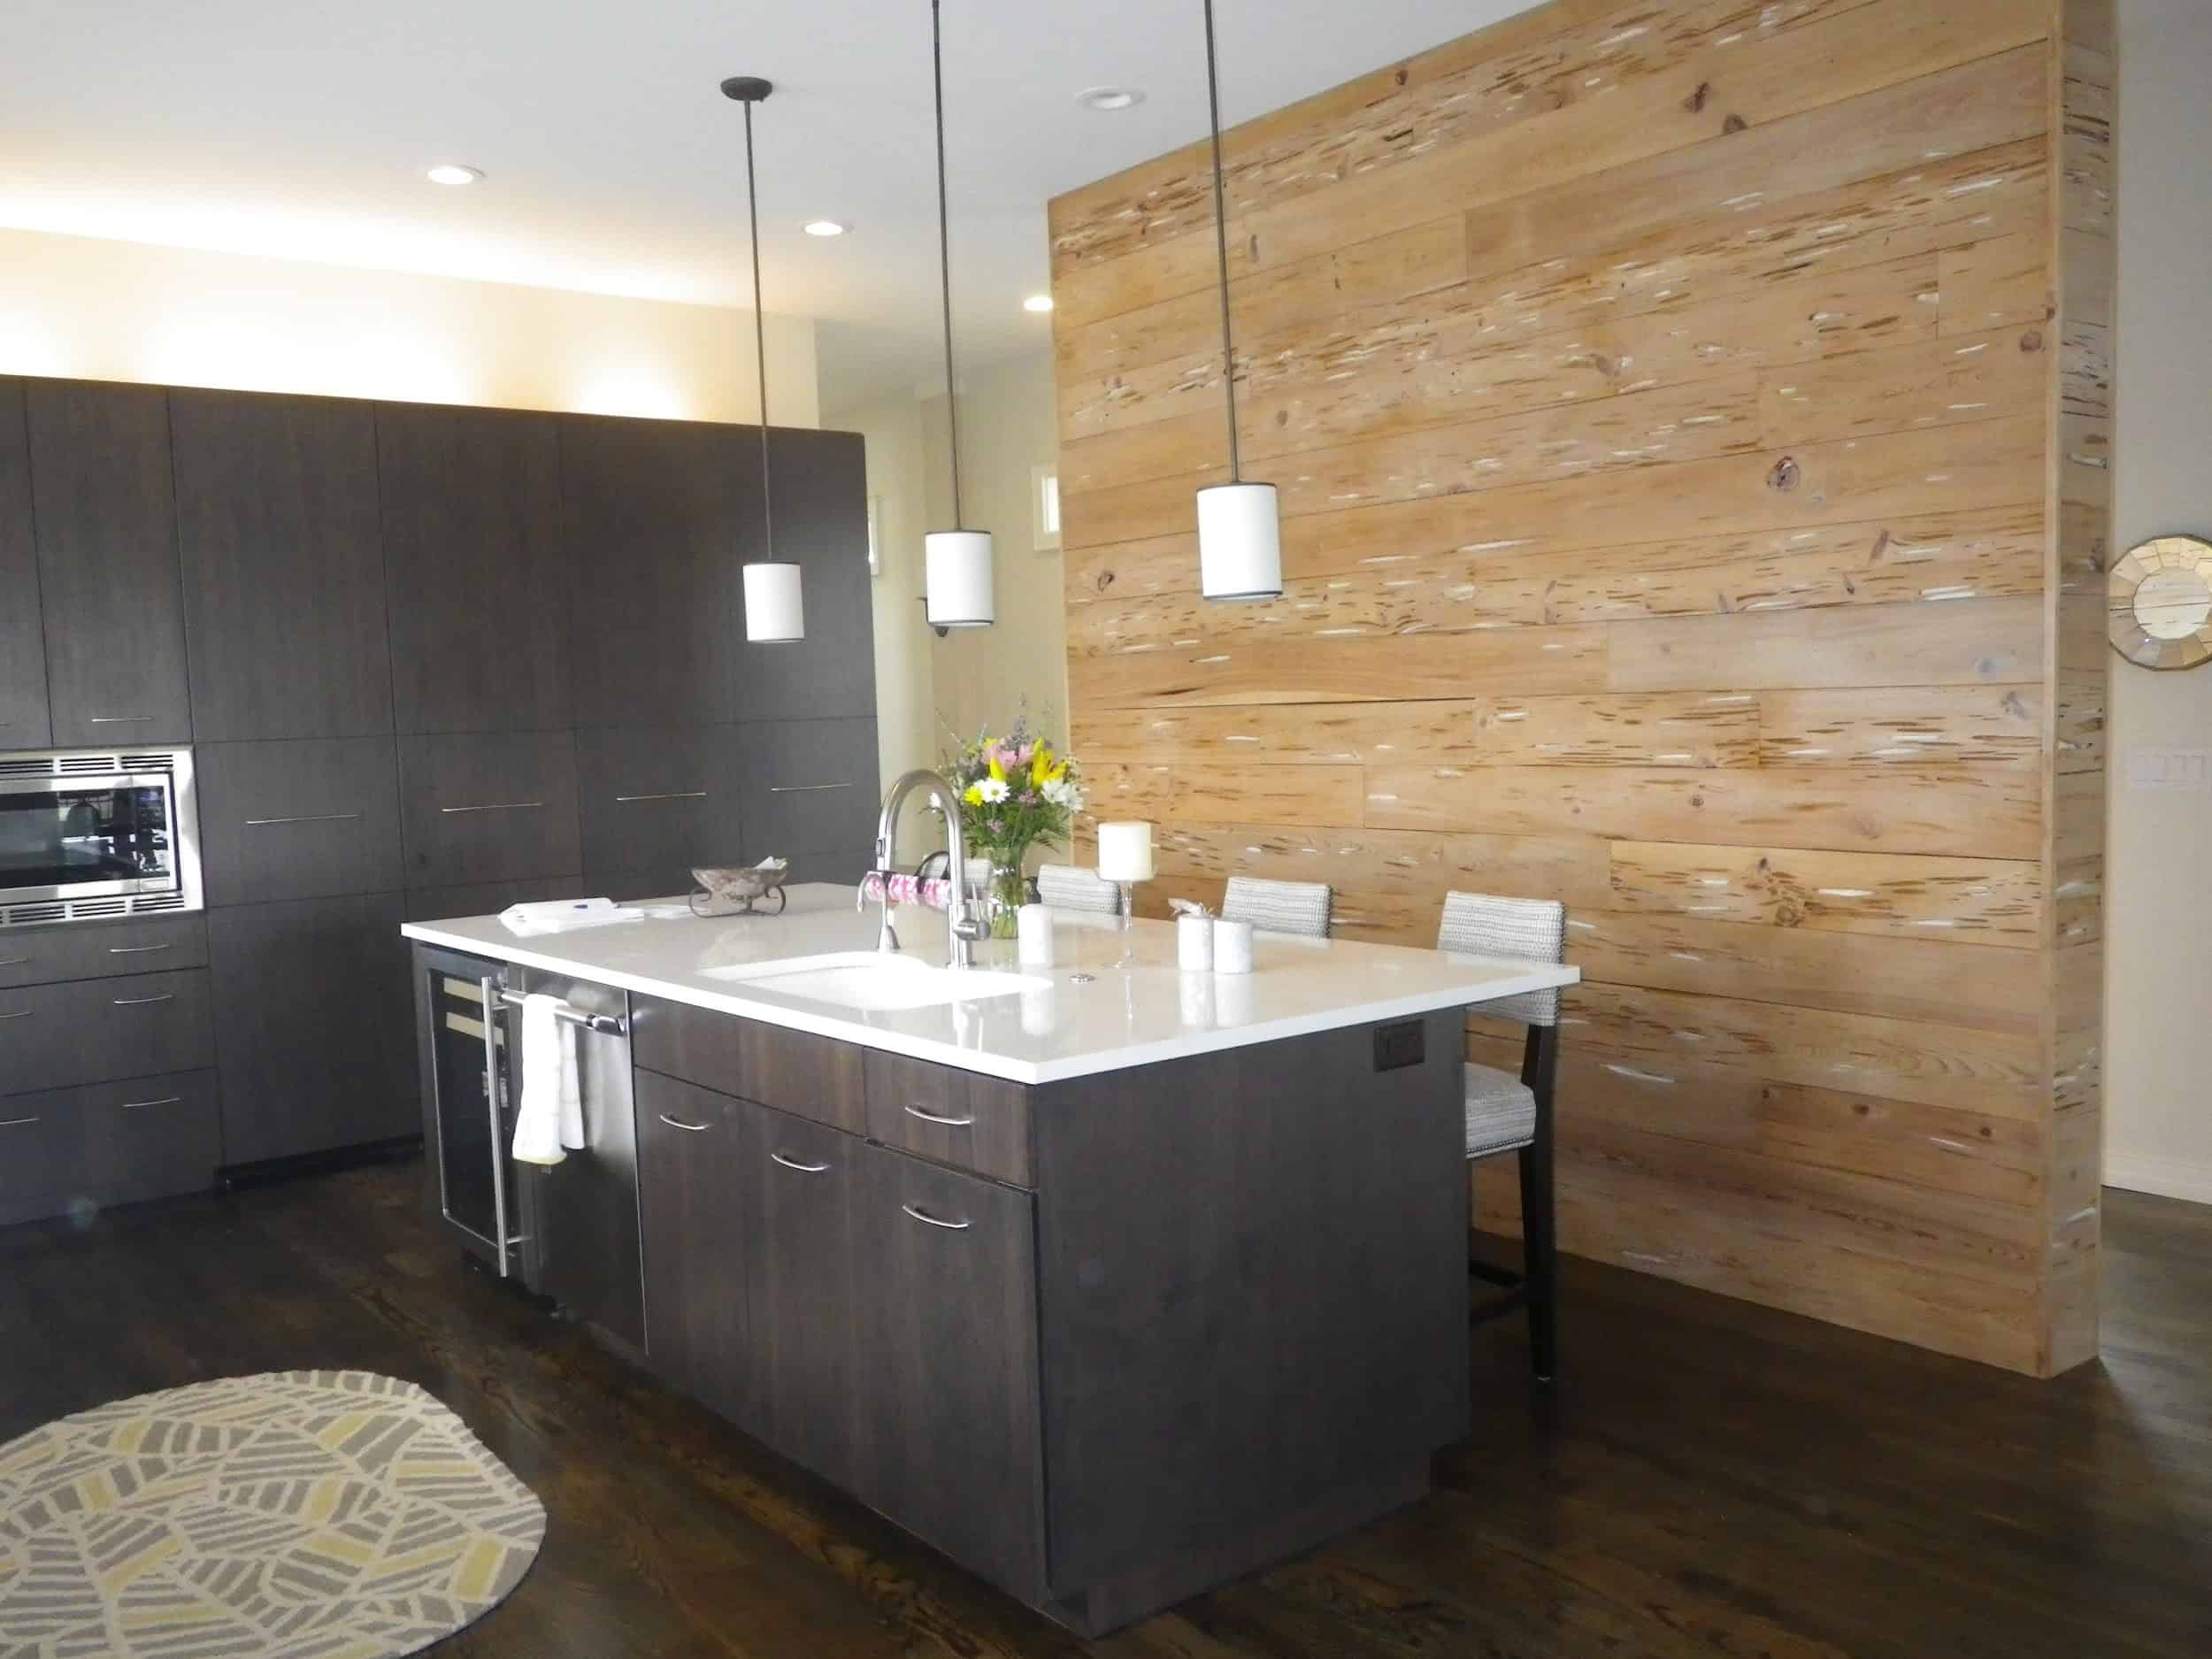 Accent wall in kitchen made of reclaimed cypress